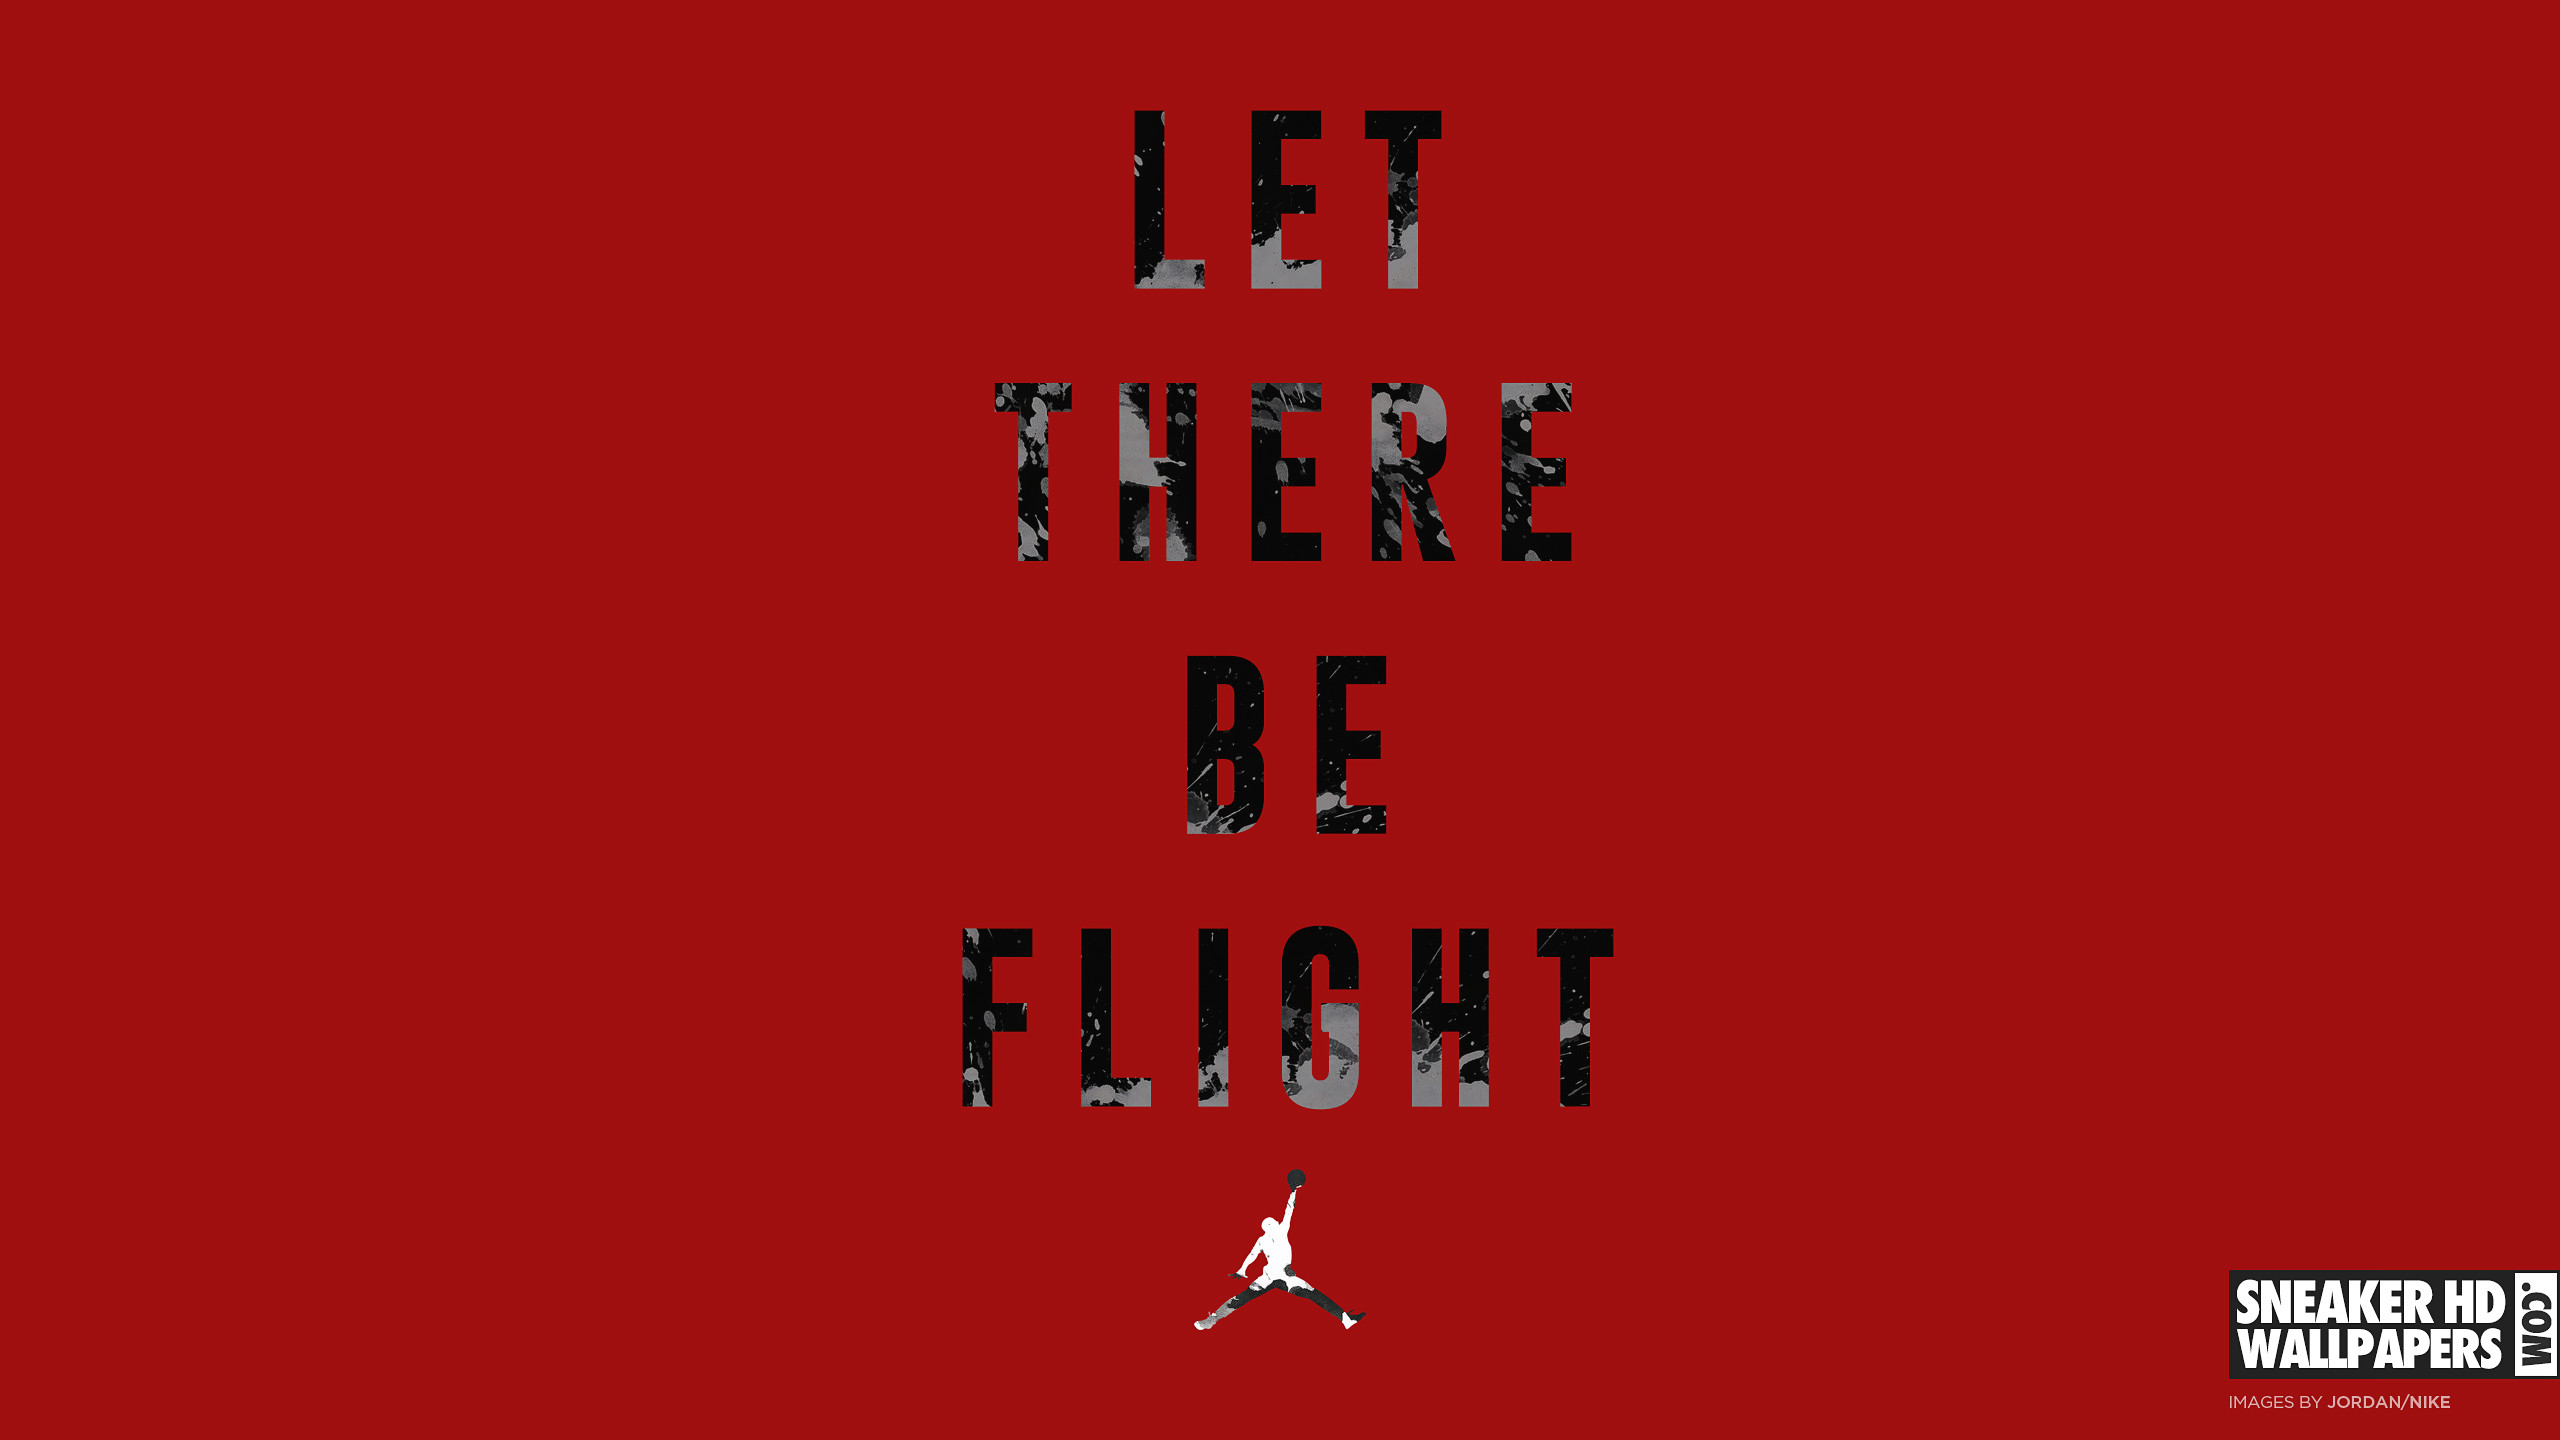 jordan iphone wallpaper hd 74 images Michael Jordan Shoes Wallpaper Jordan Retro Wallpaper